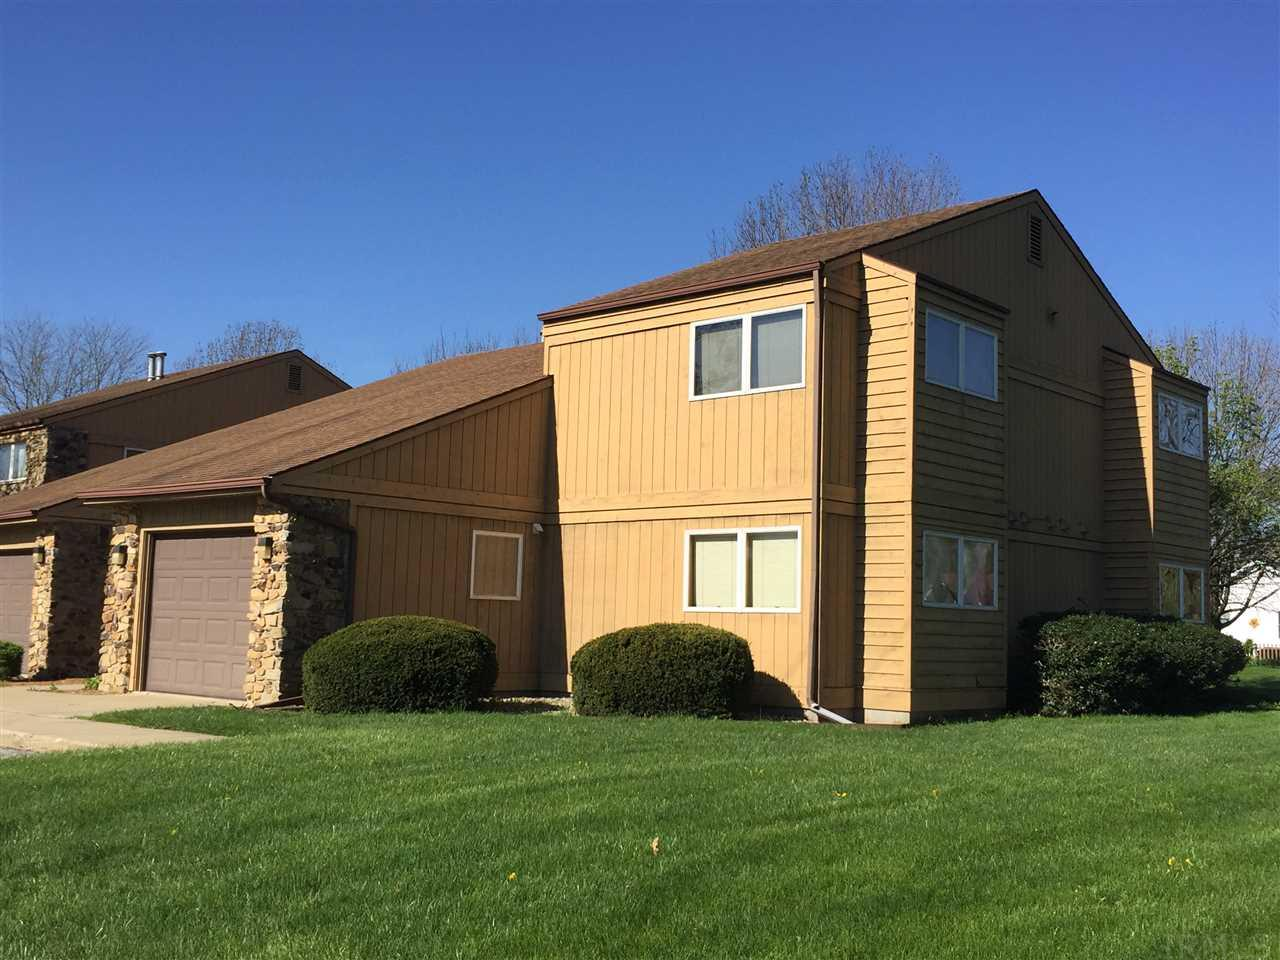 2221 Hillcrest Unit J, Plymouth, IN 46563